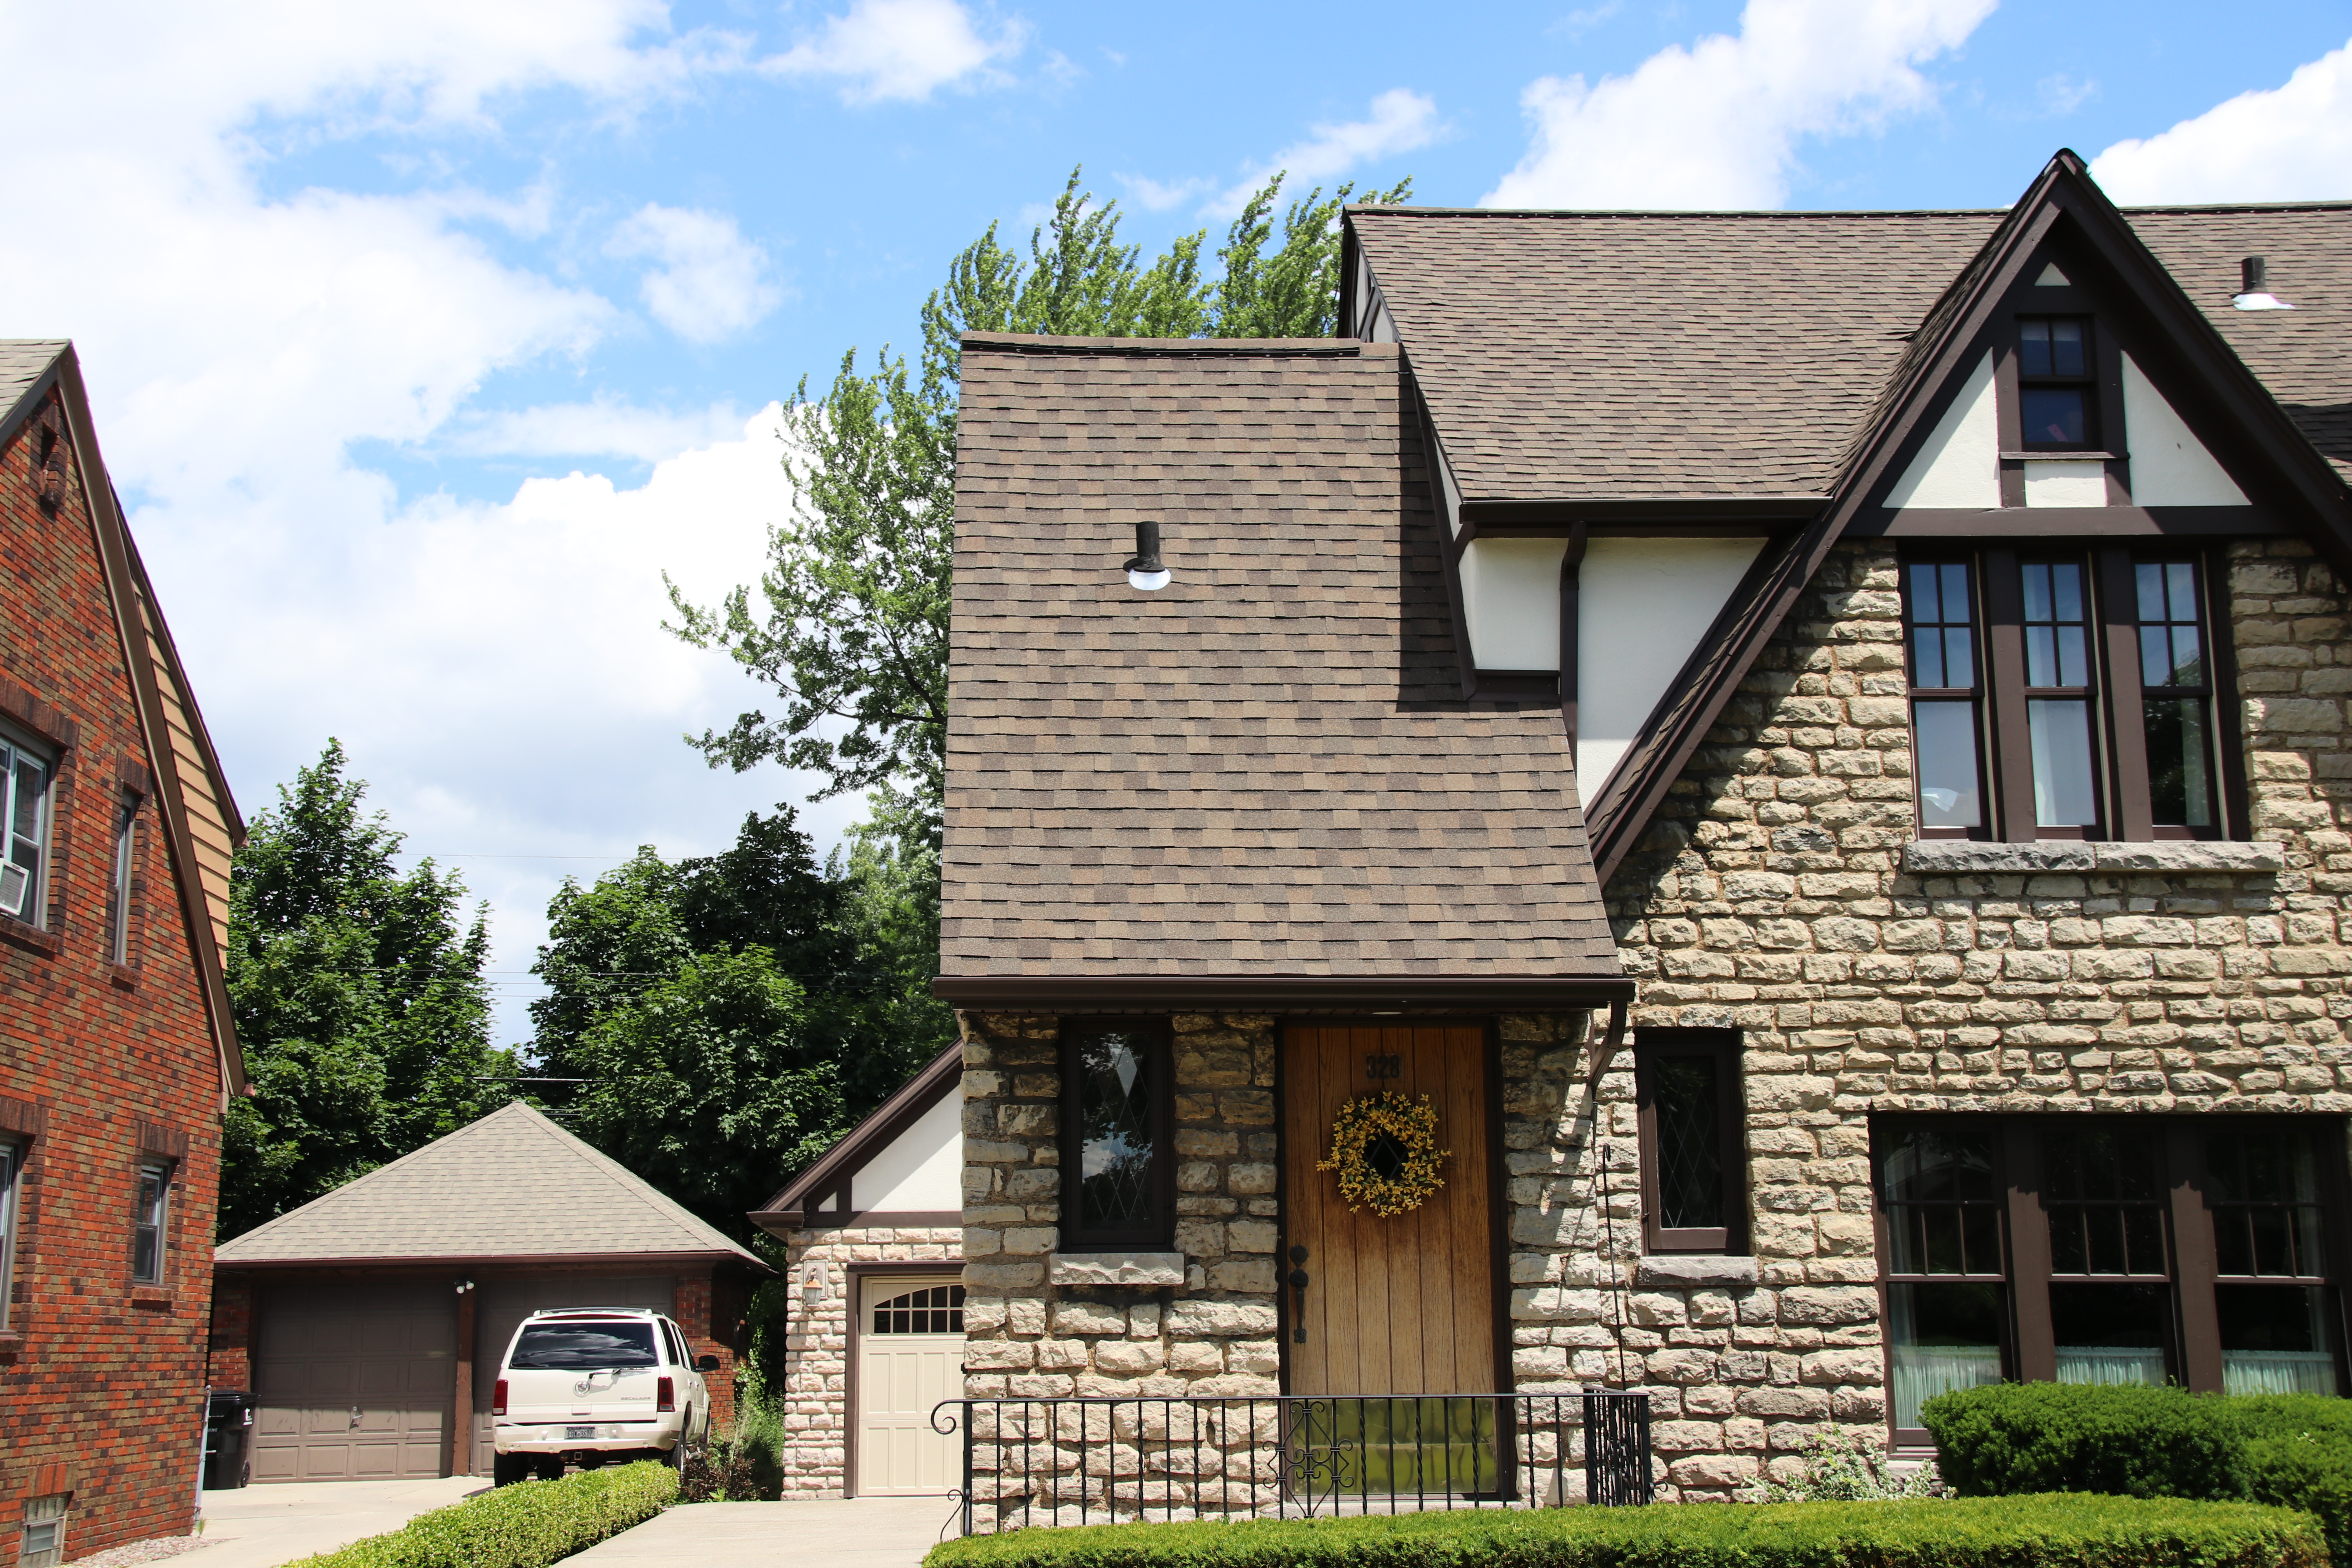 Roof Repair And Roofing Contractors In Buffalo Ivy Lea